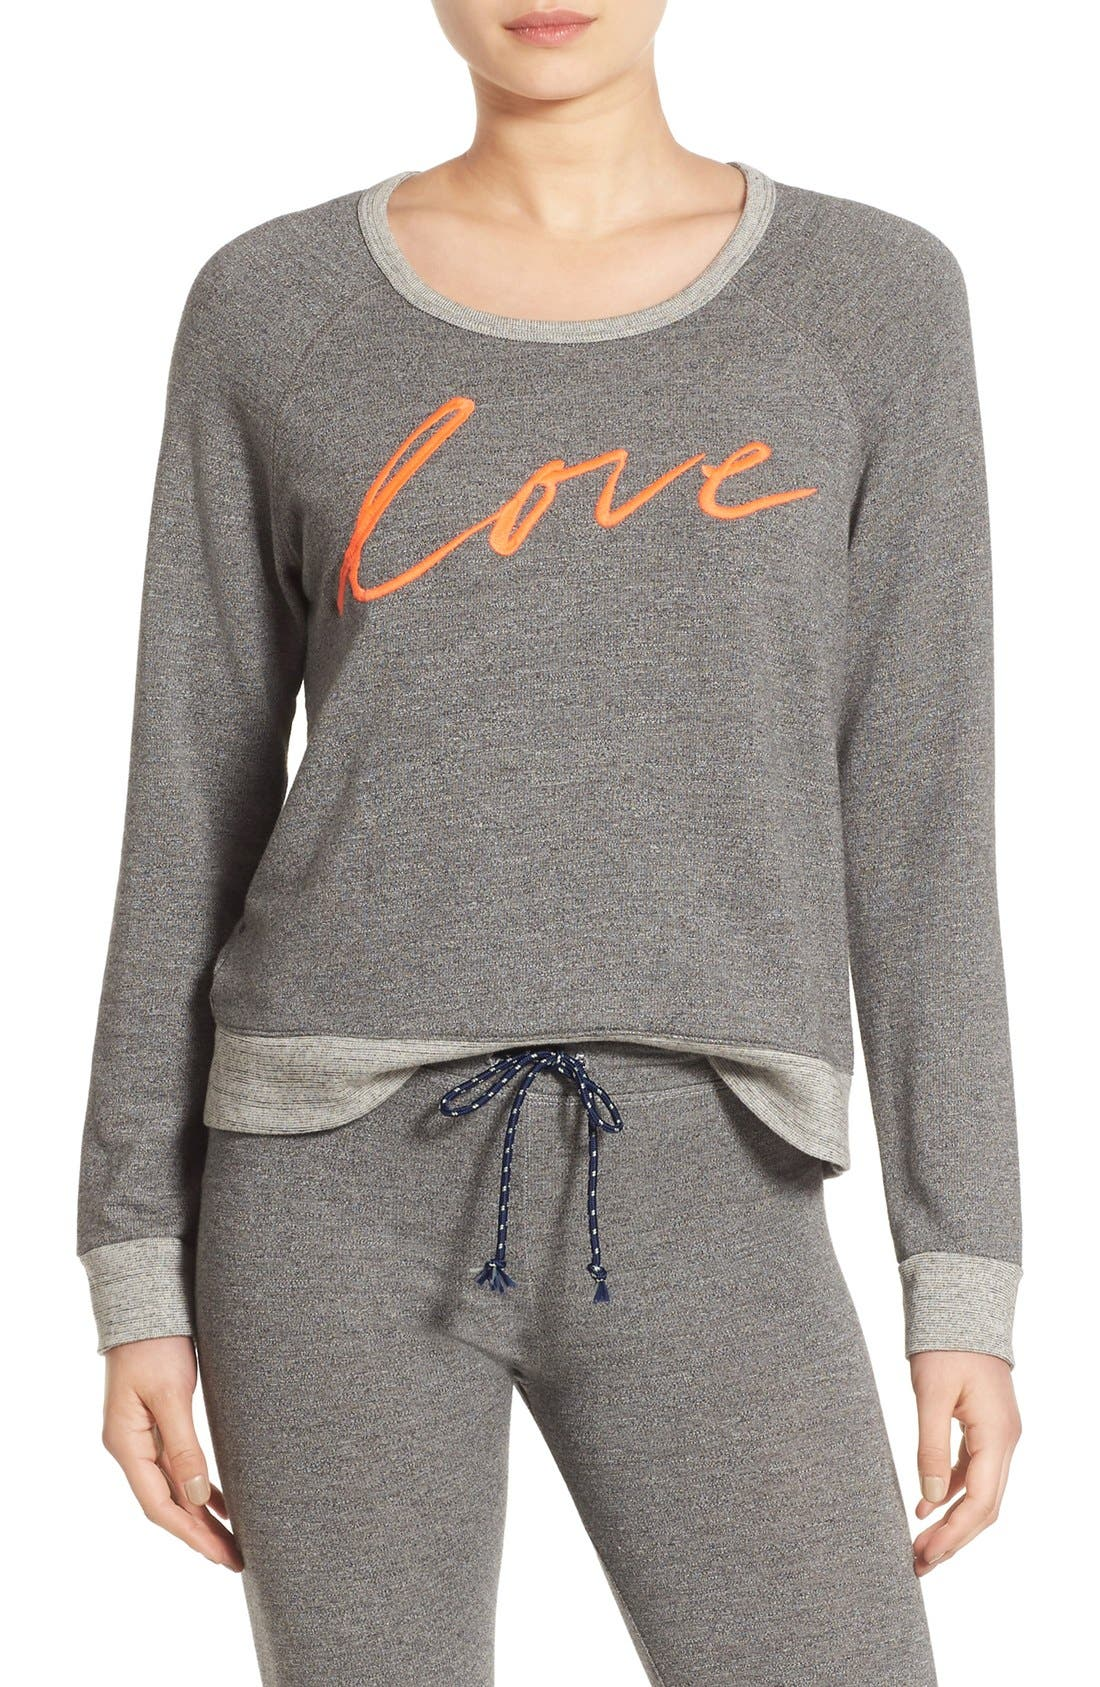 'Love' Pullover Sweatshirt,                             Main thumbnail 1, color,                             039